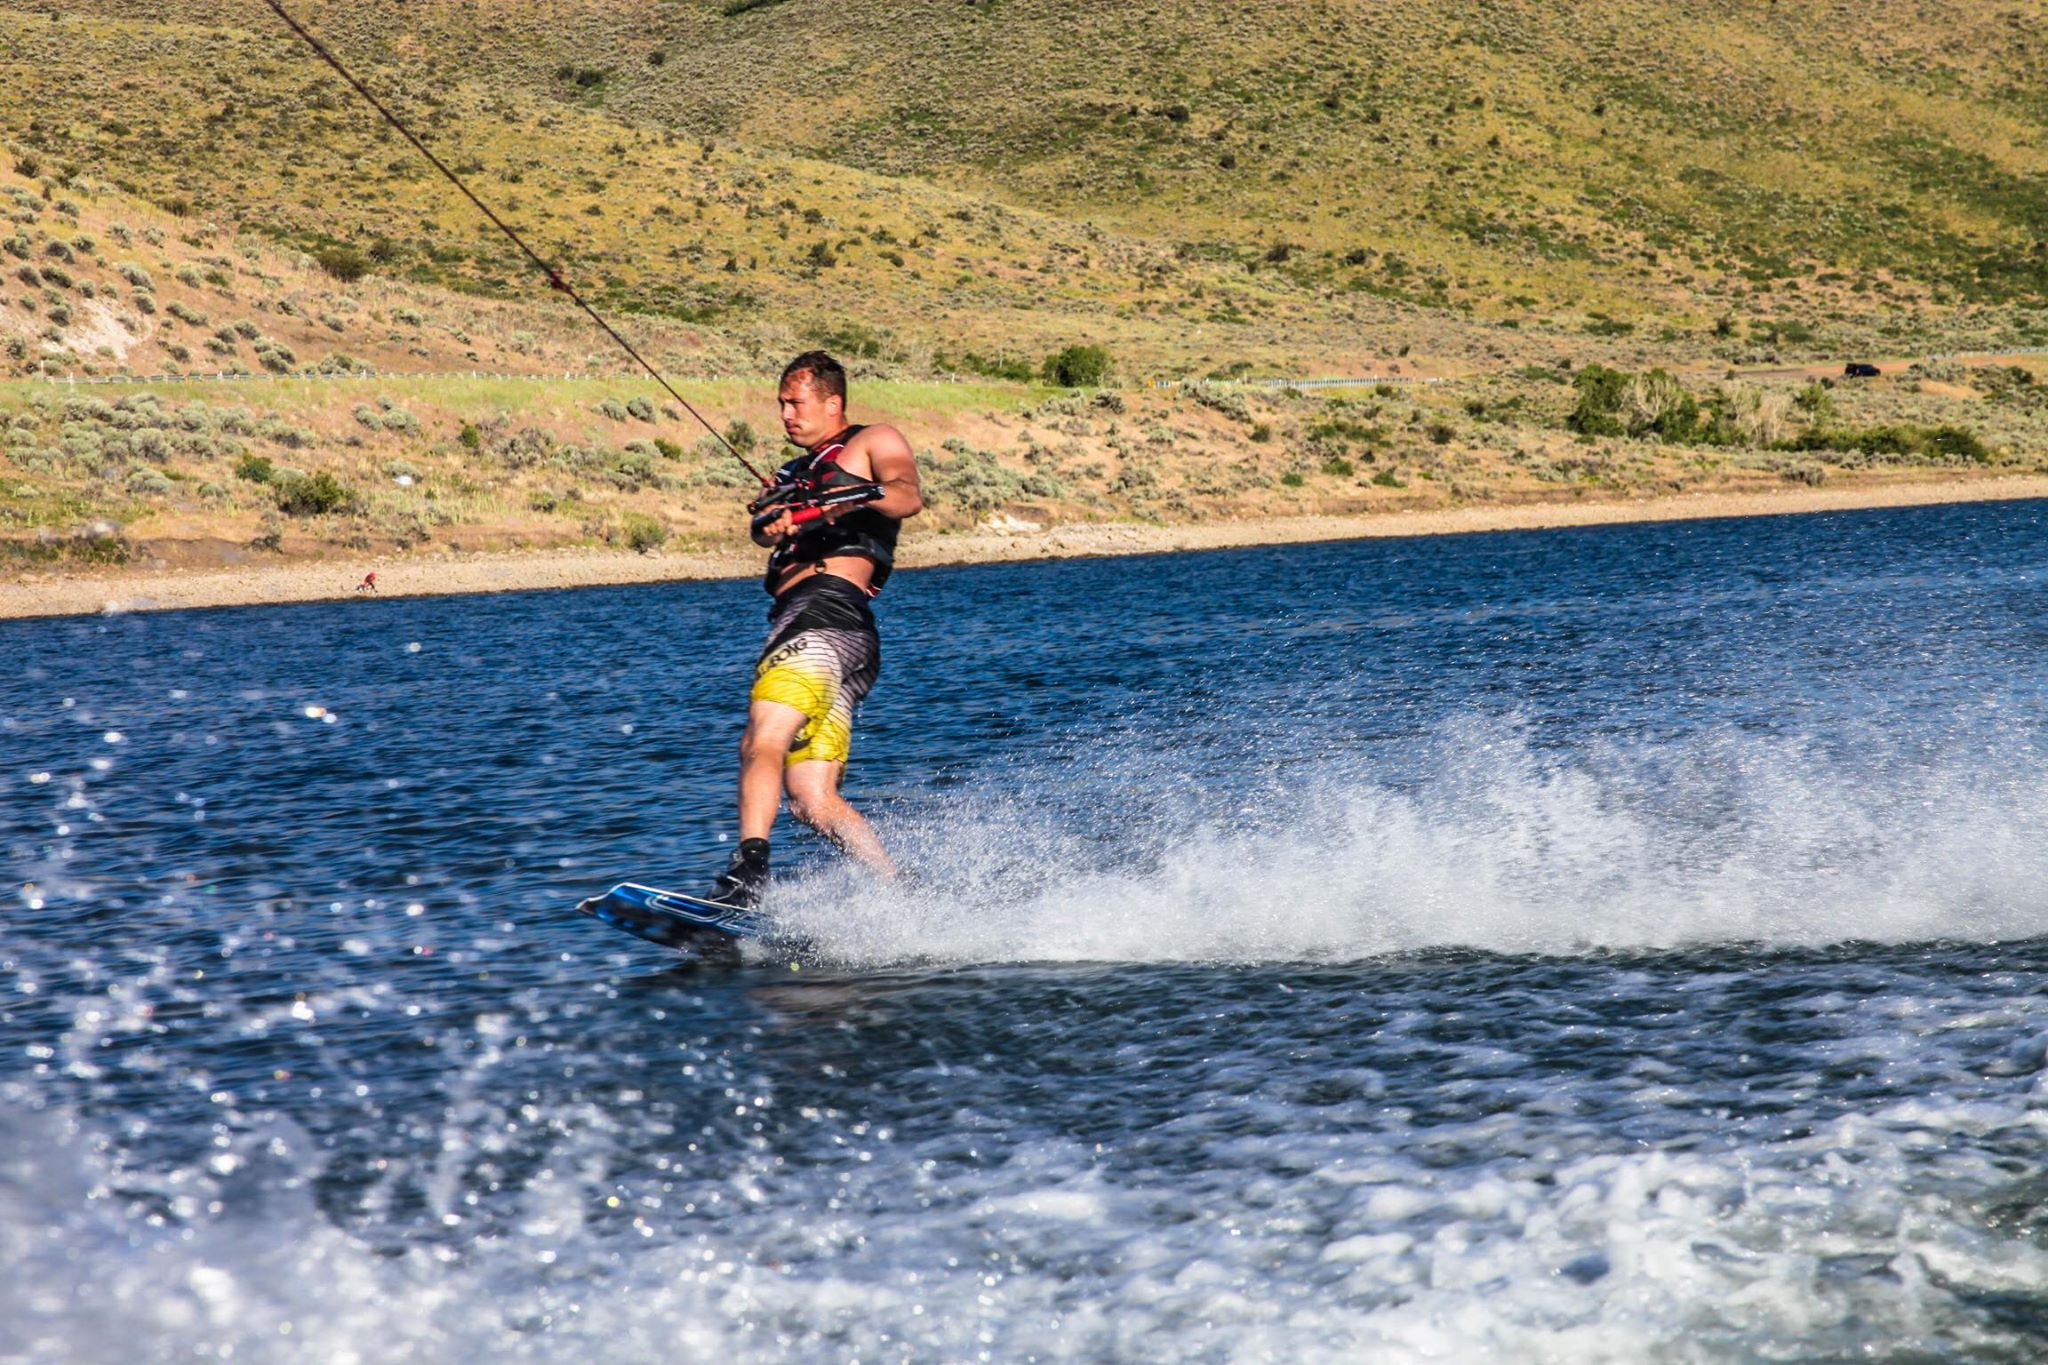 Hard out on the wakeboard's tow edge behind our motor boat